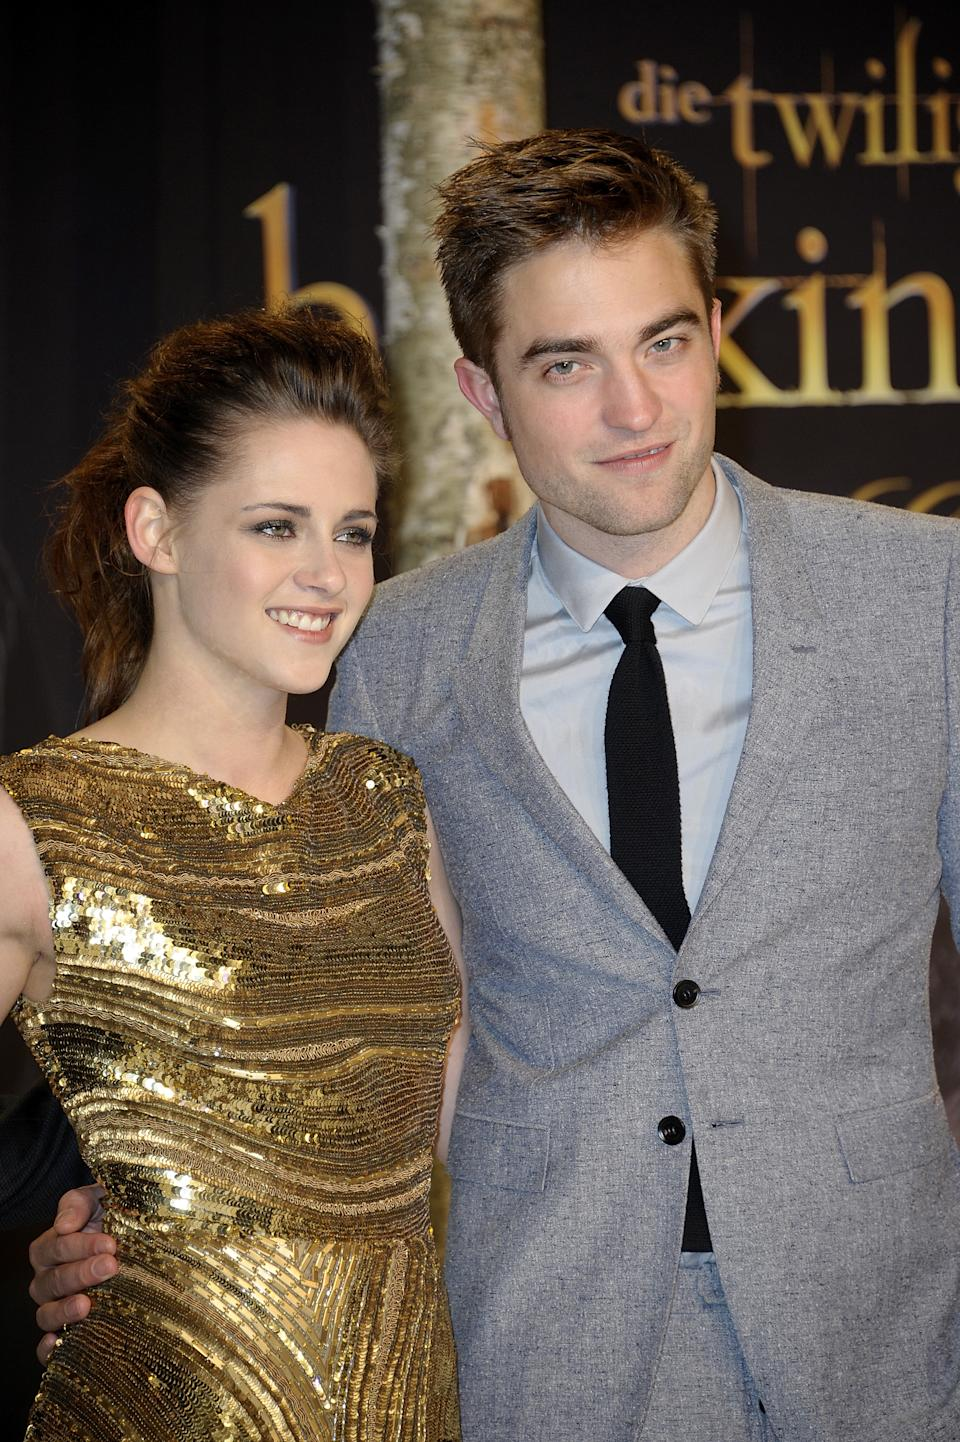 BERLIN, GERMANY - NOVEMBER 16:  Kristen Stewart and Robert Pattinson attend the 'Twilight Saga: Breaking Dawn Part 2' Germany Premiere at CineStar on November 16, 2012 in Berlin, Germany.  (Photo by Luca Teuchmann/WireImage)